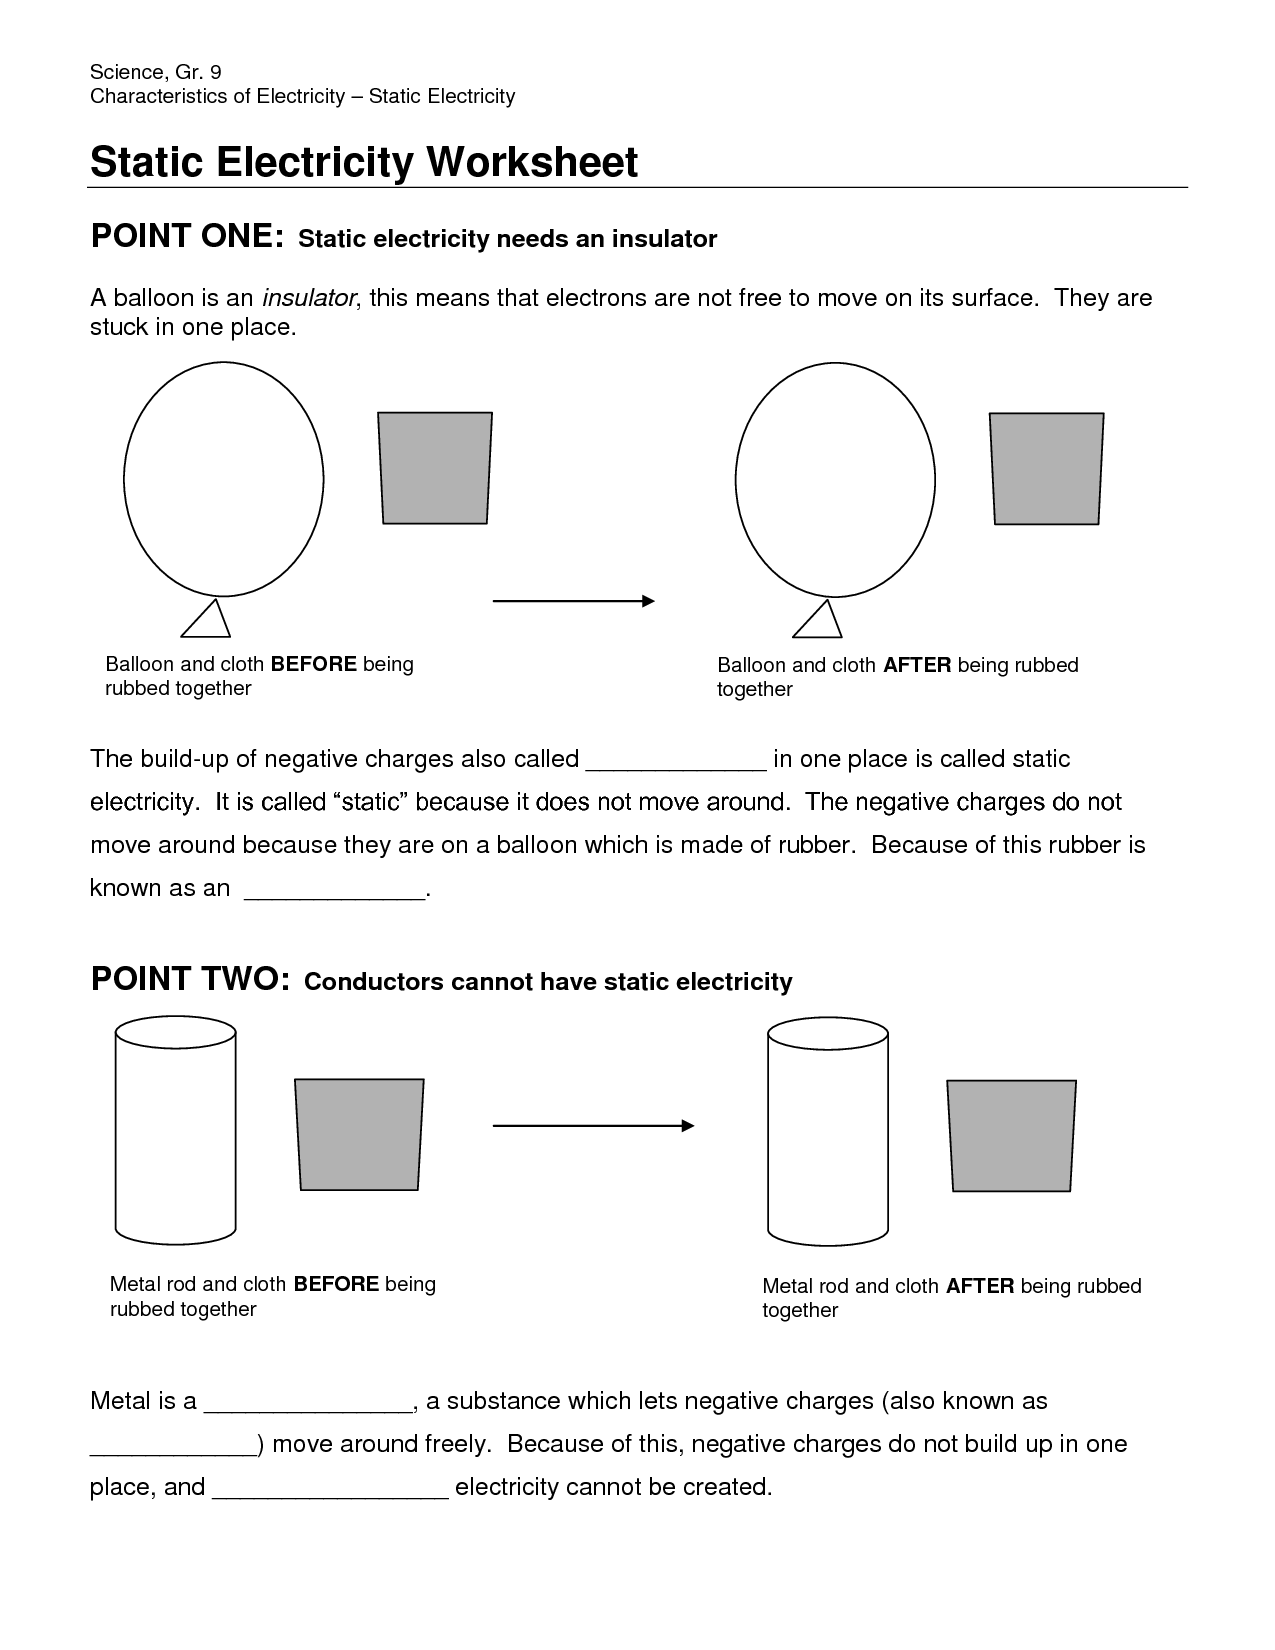 27 Static Electricity Worksheet Answers